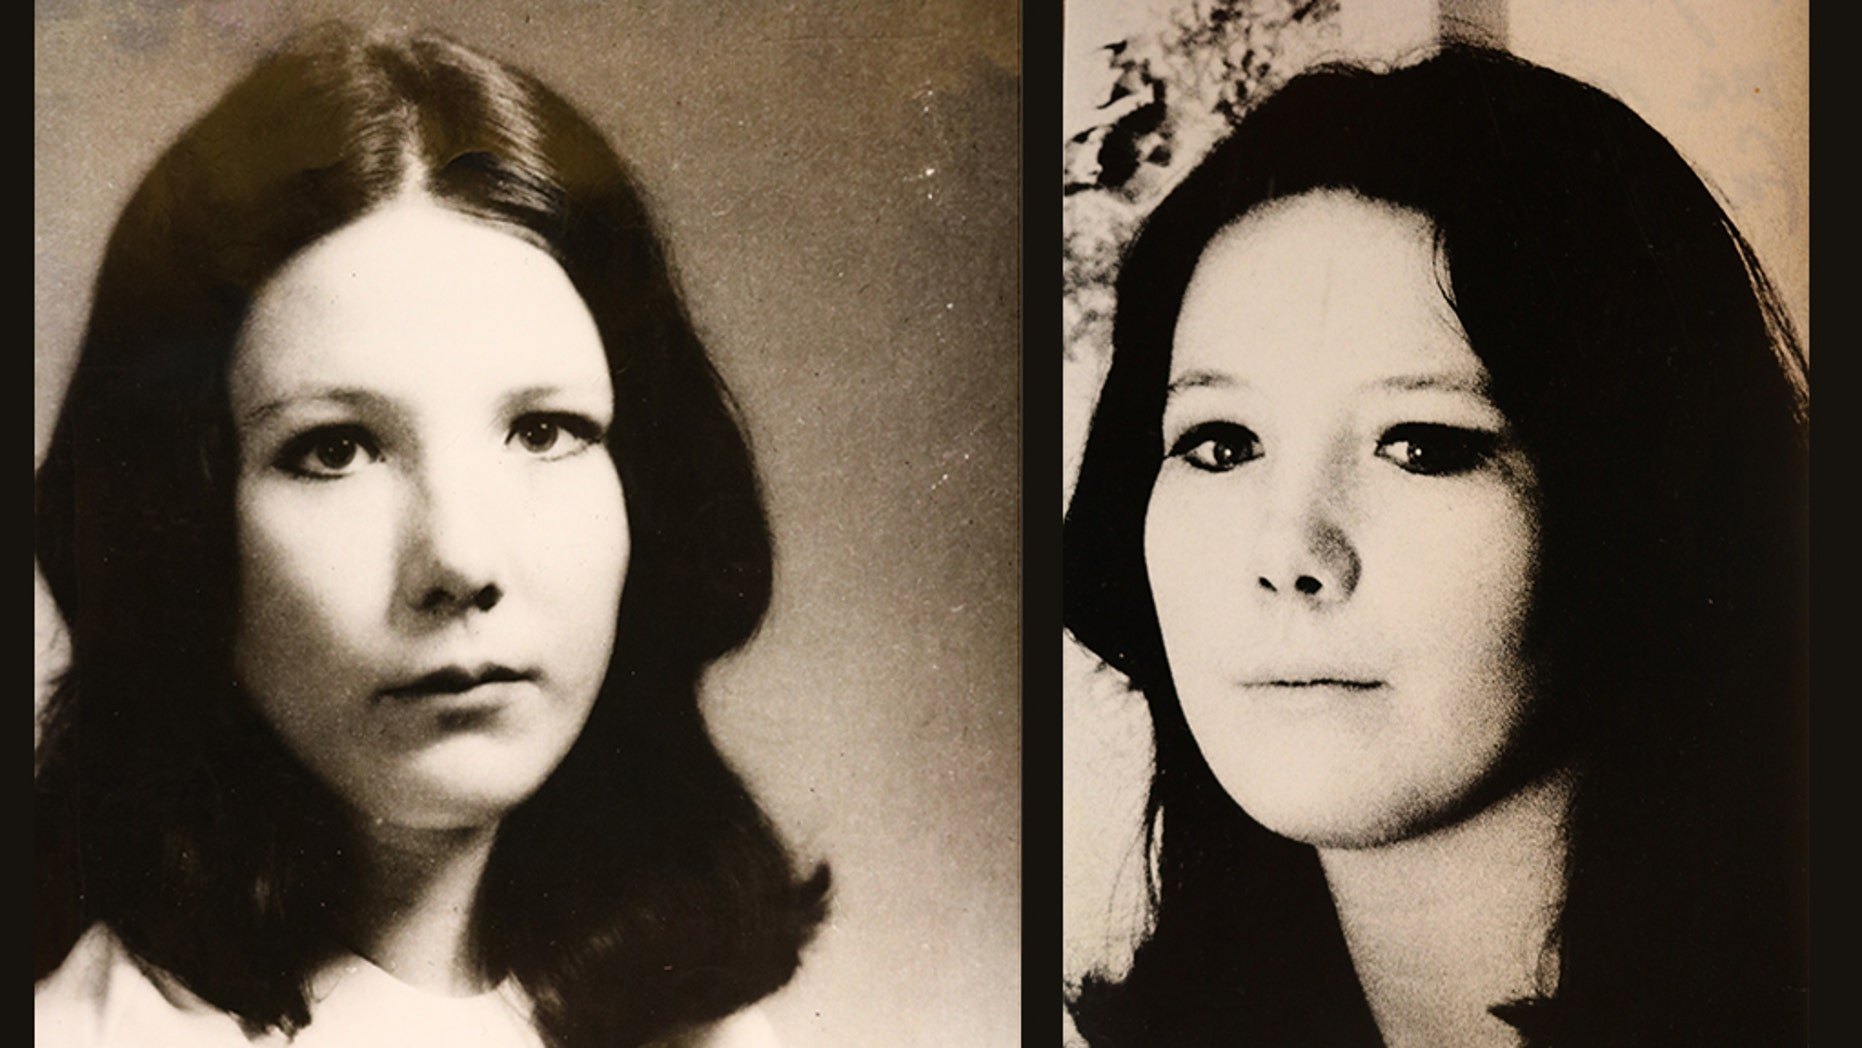 Harvard graduate student Jane Britton, 23, was raped, beaten and strangled in her apartment in Cambridge, Mass., in 1969